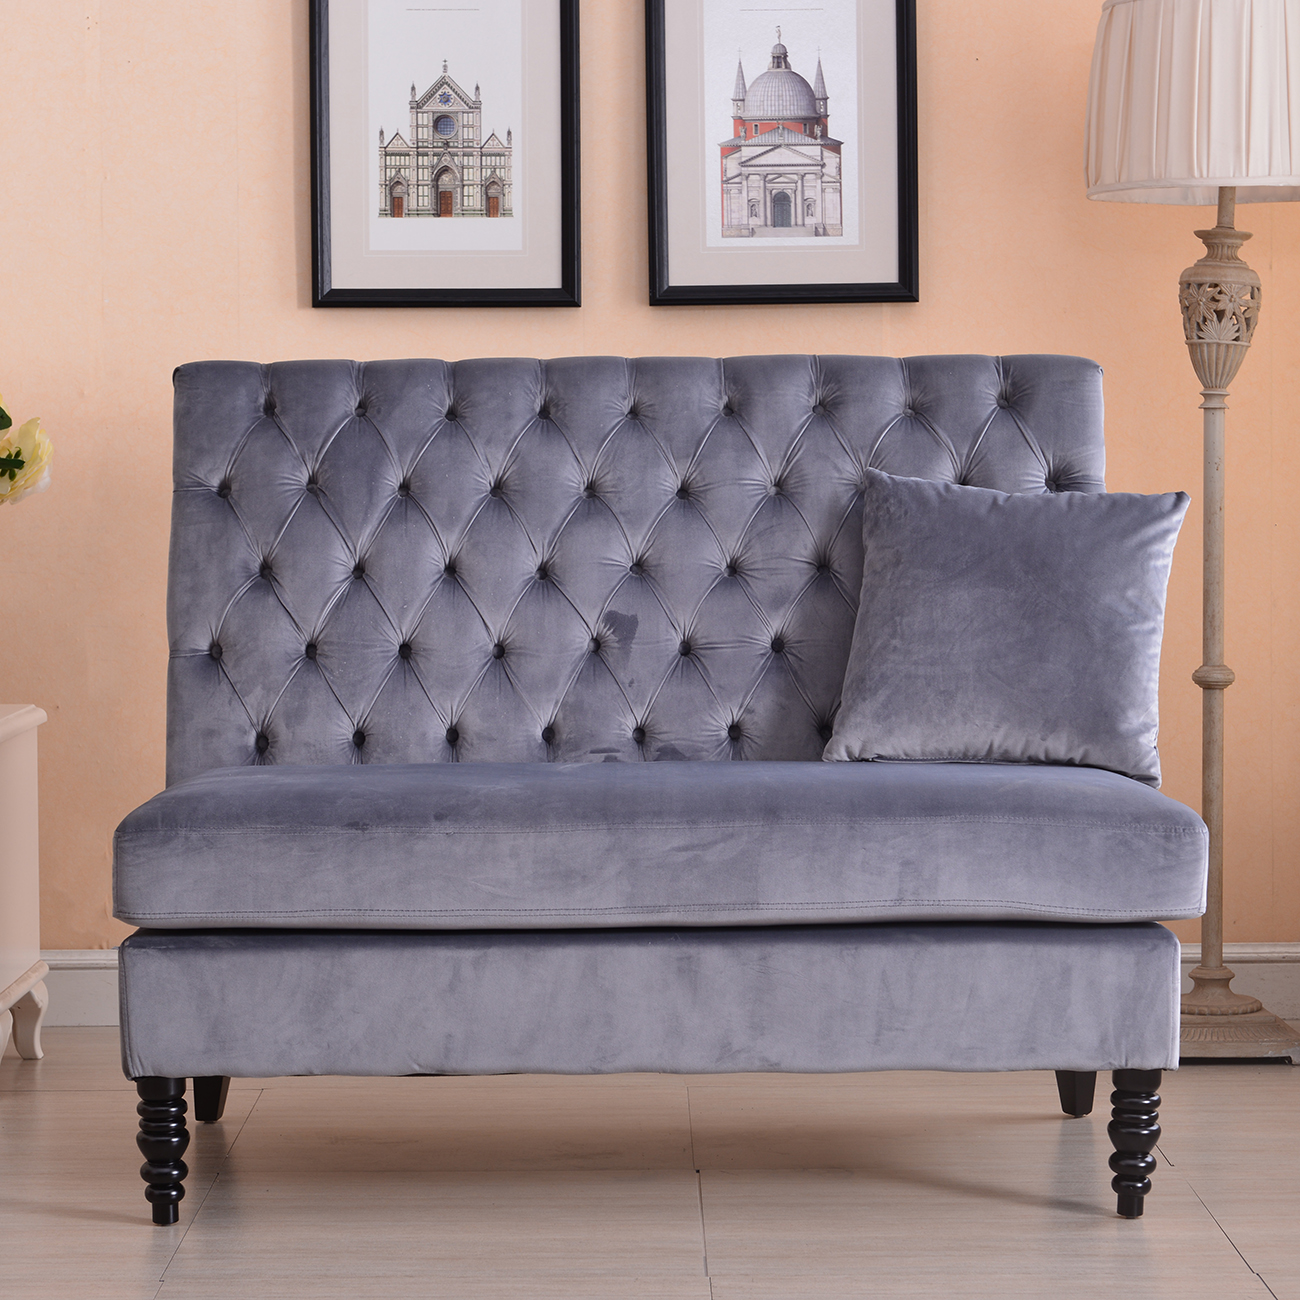 Settee Loveseat Details About Velvet Modern Tufted Settee Bench Bedroom Sofa High Back Love Seat Beige Gray